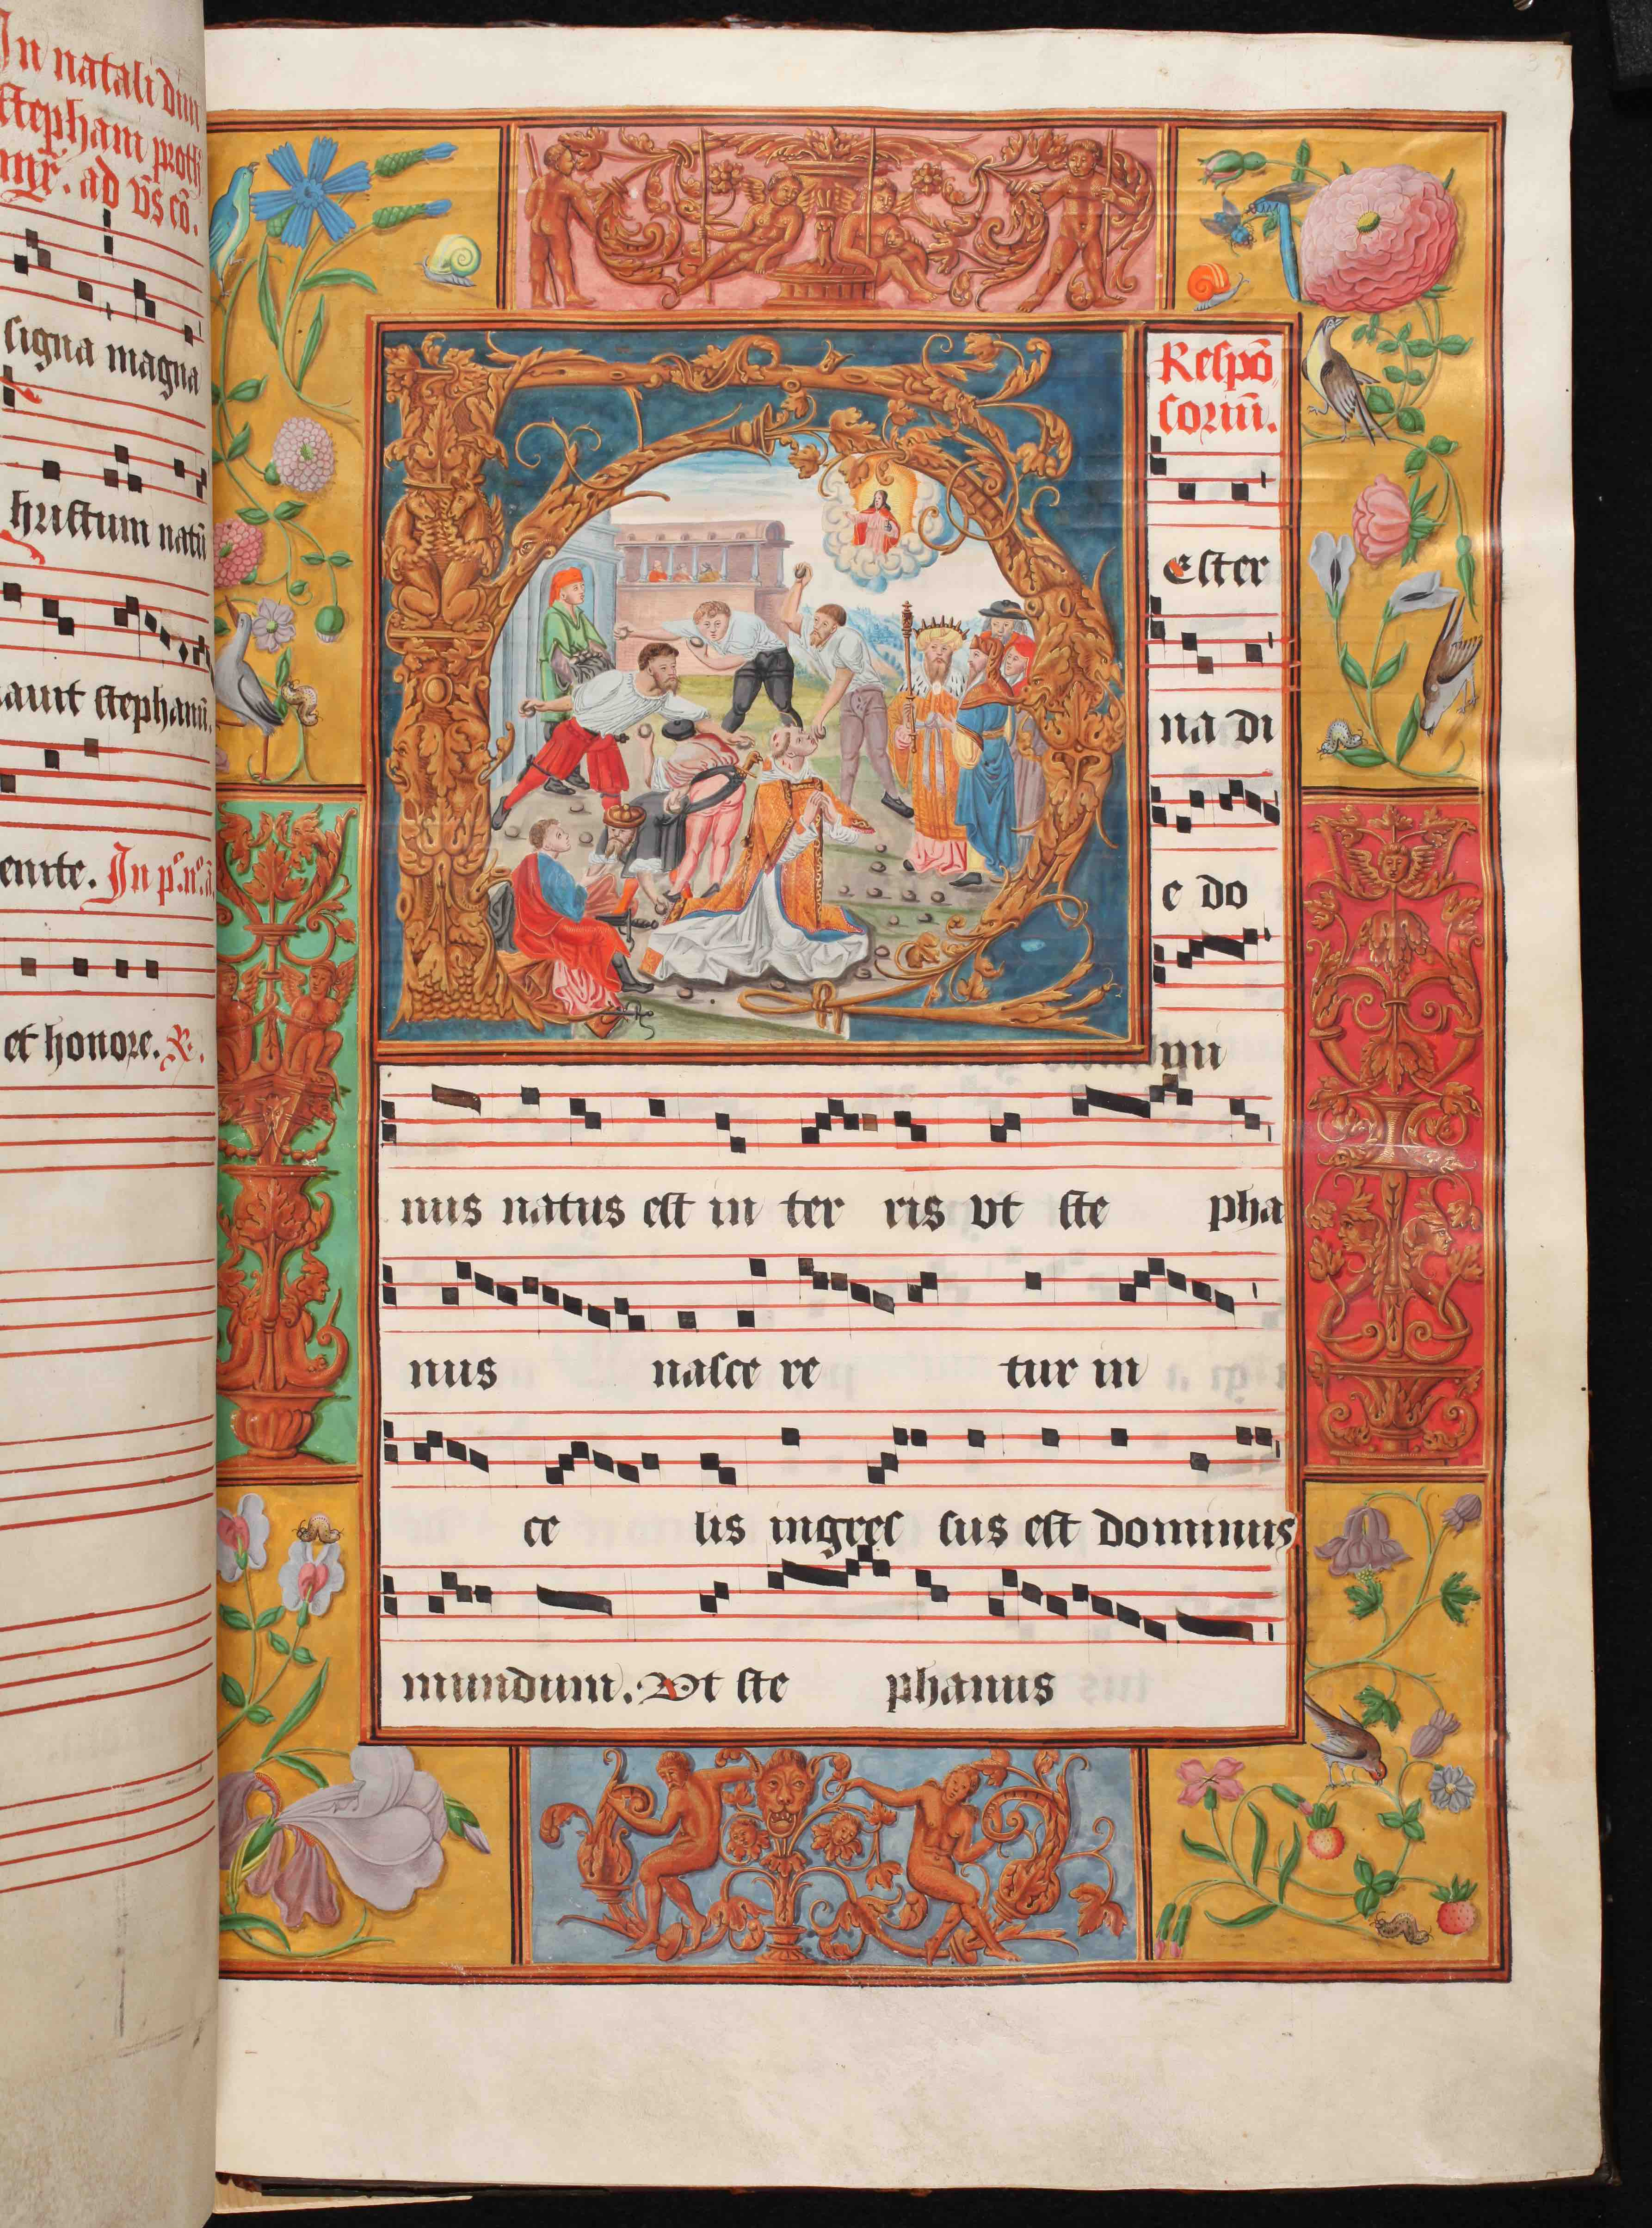 16th-century Antiphonary, Gethsemani Abbey (<a href='https://w3id.org/vhmml/readingRoom/view/500934'>AGOC 00013 002</a>)